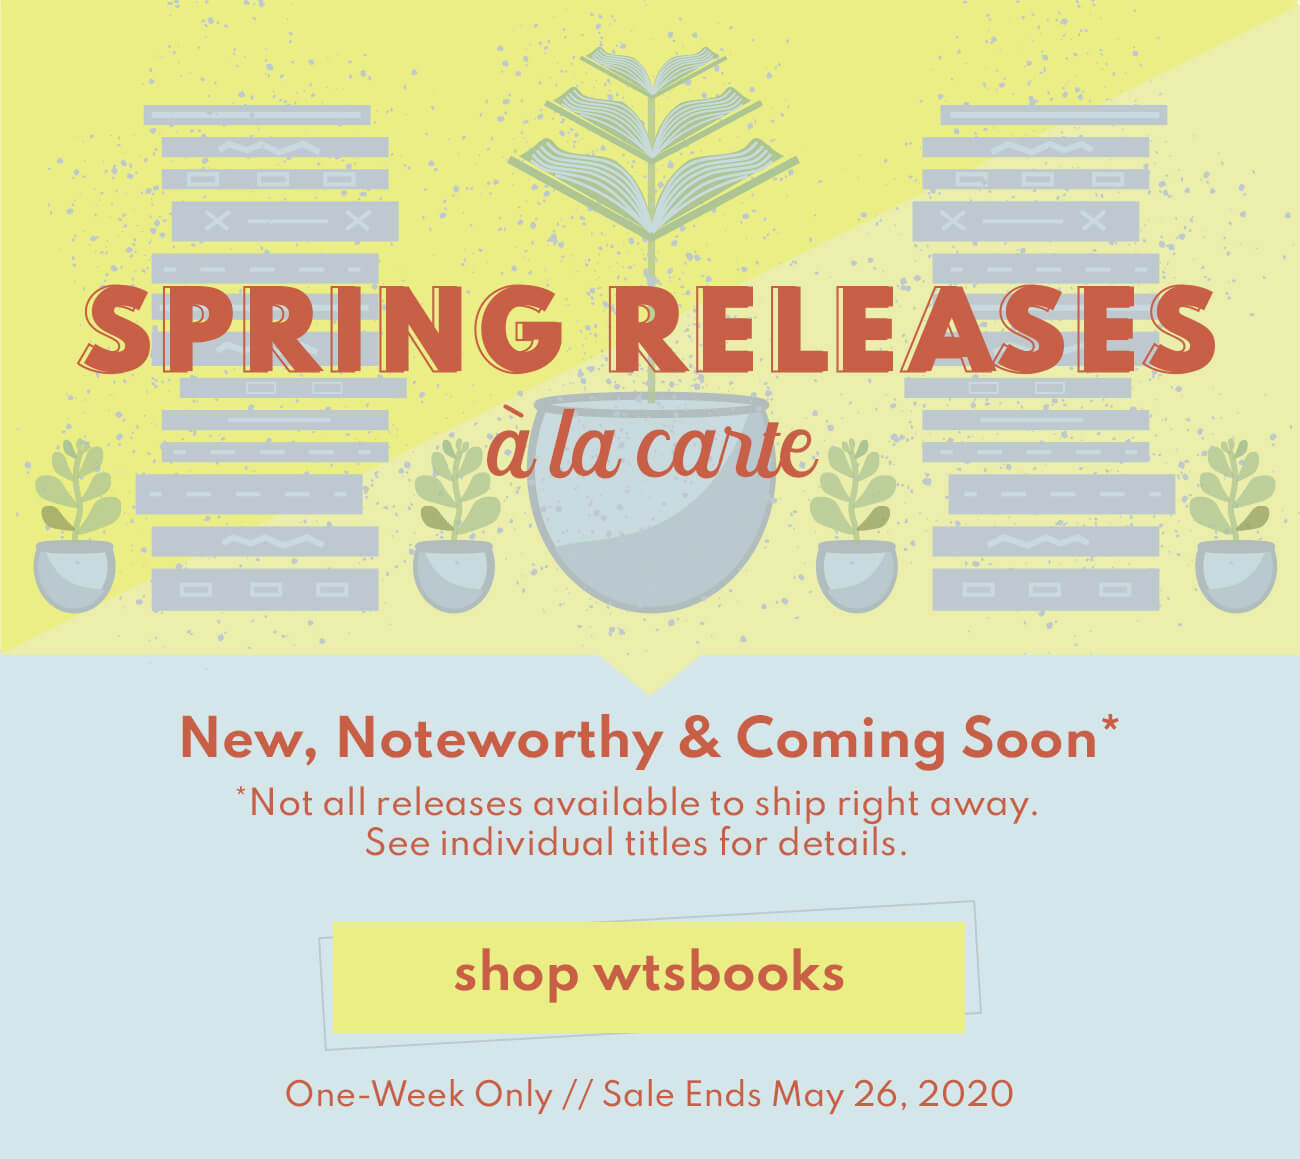 Spring Releases